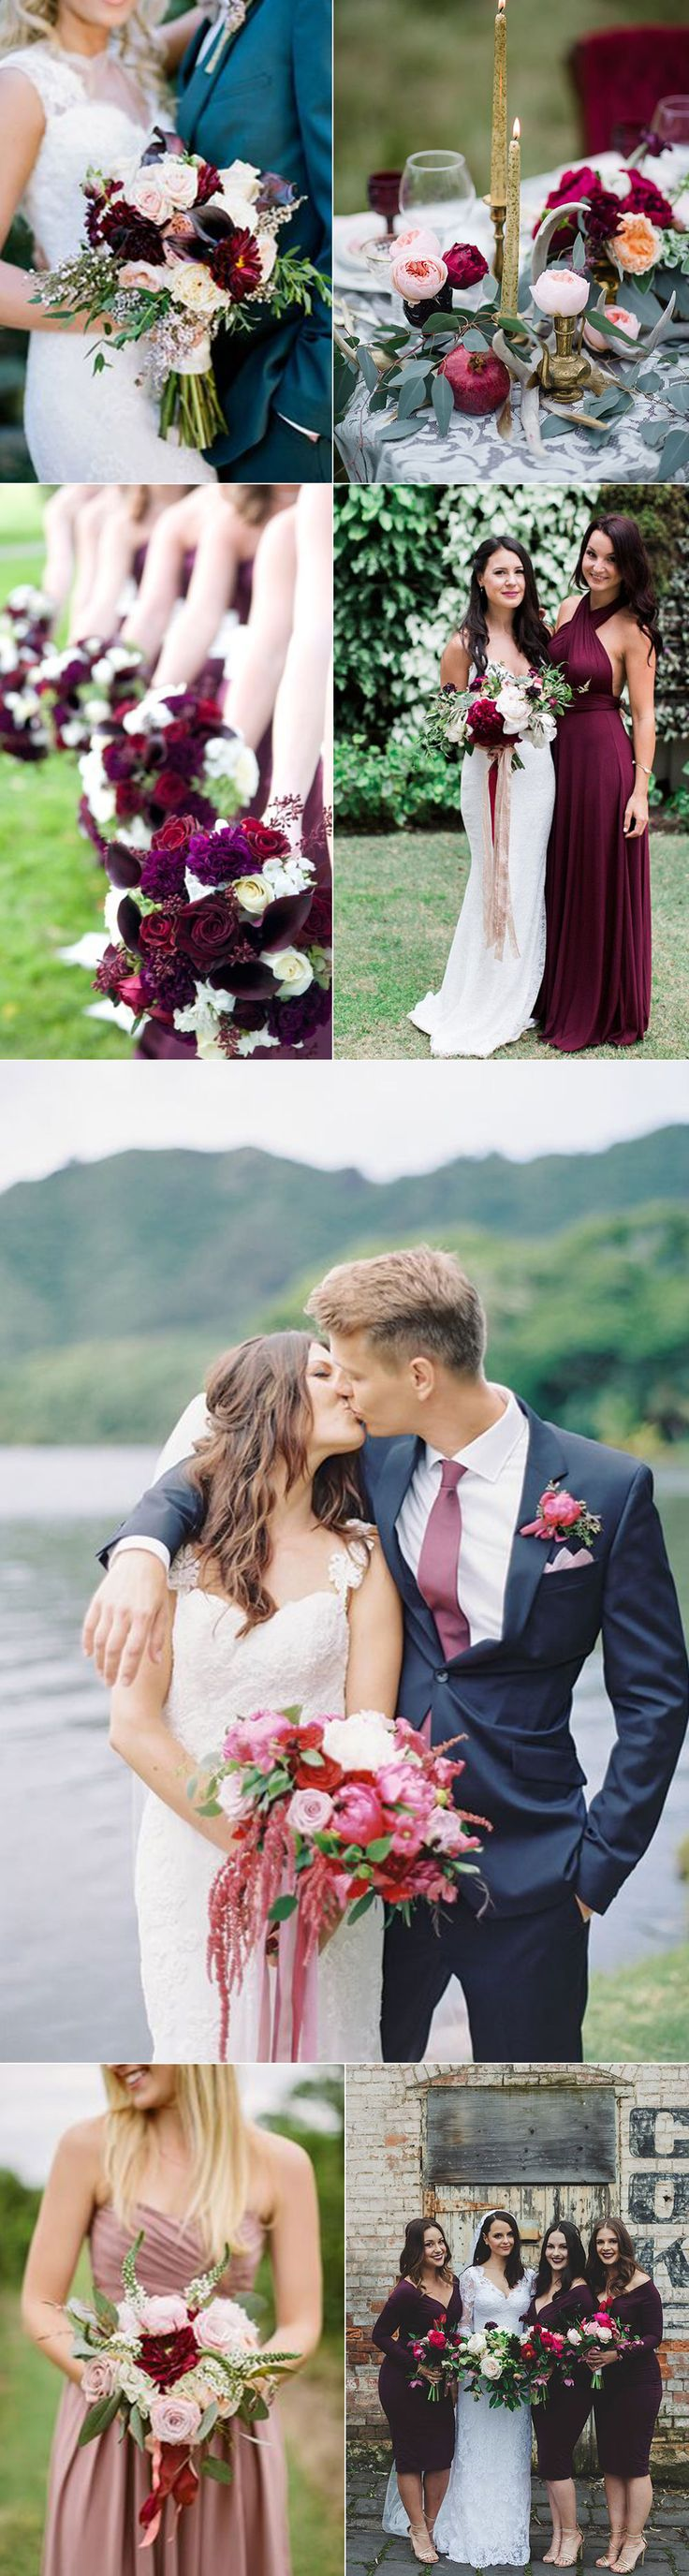 If I hadn't already got married, this would have been such a pretty color scheme to do! Weddings in Plum and Pink